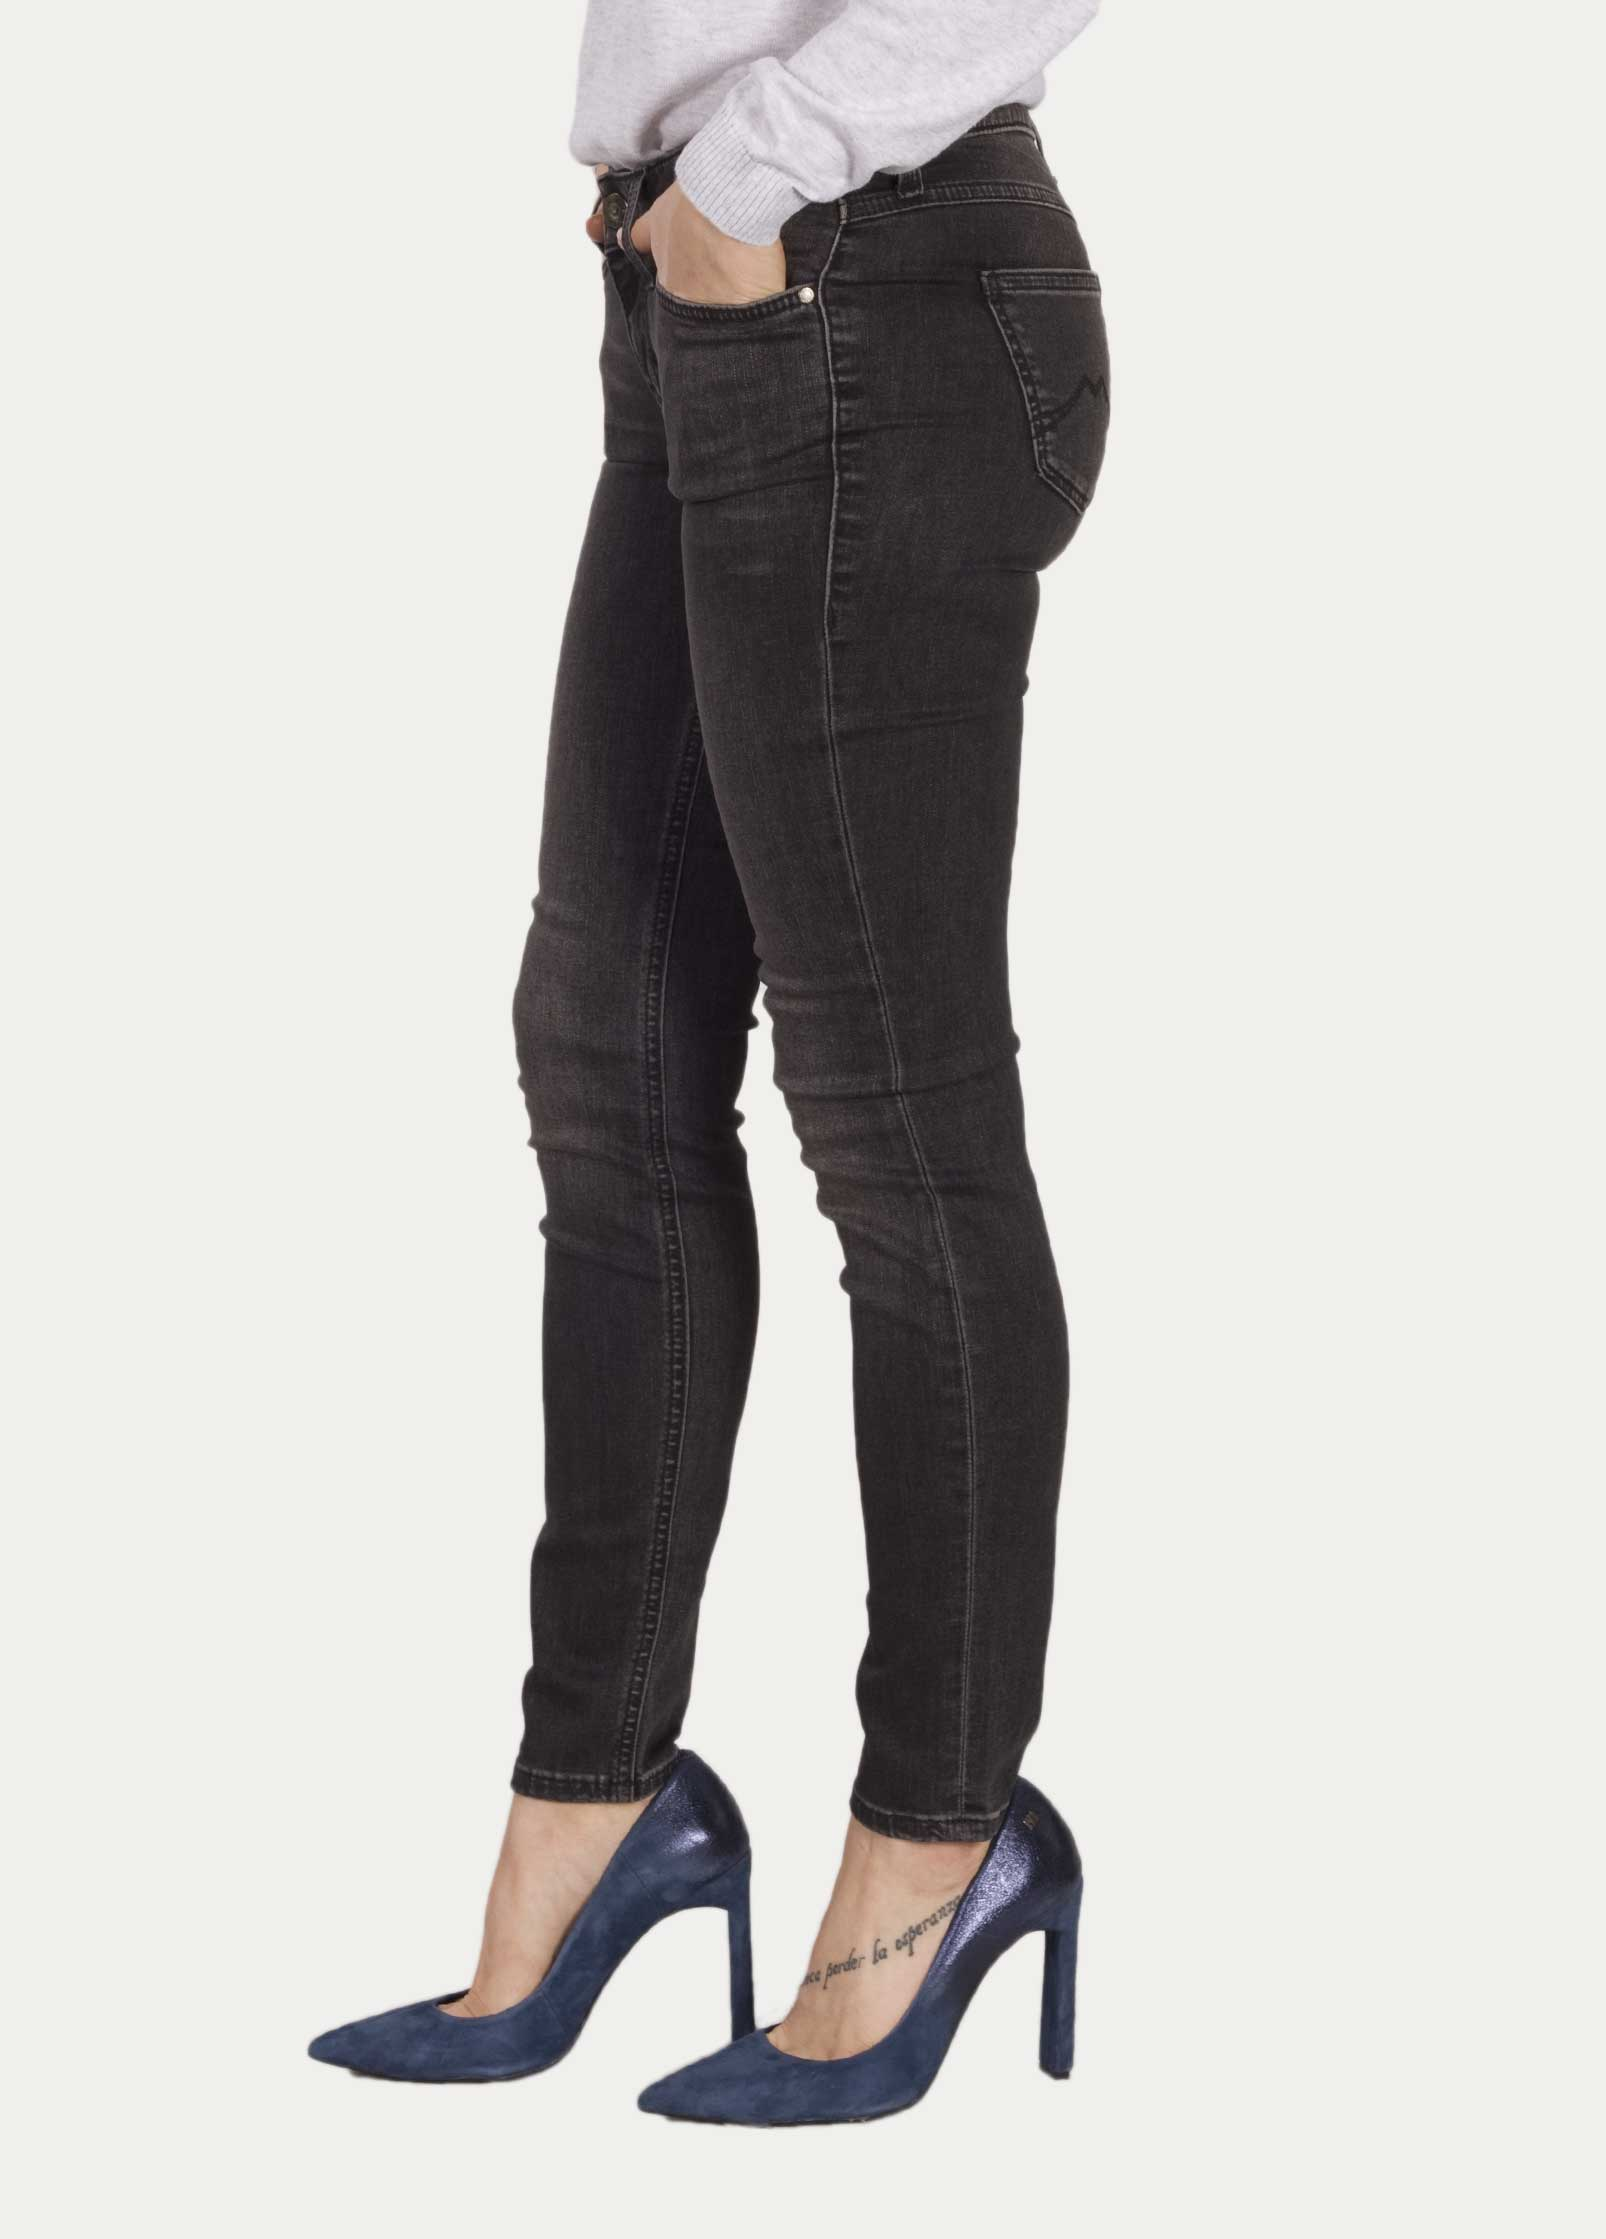 Mustang® Jasmin Jeggins - 882 Dark - elements